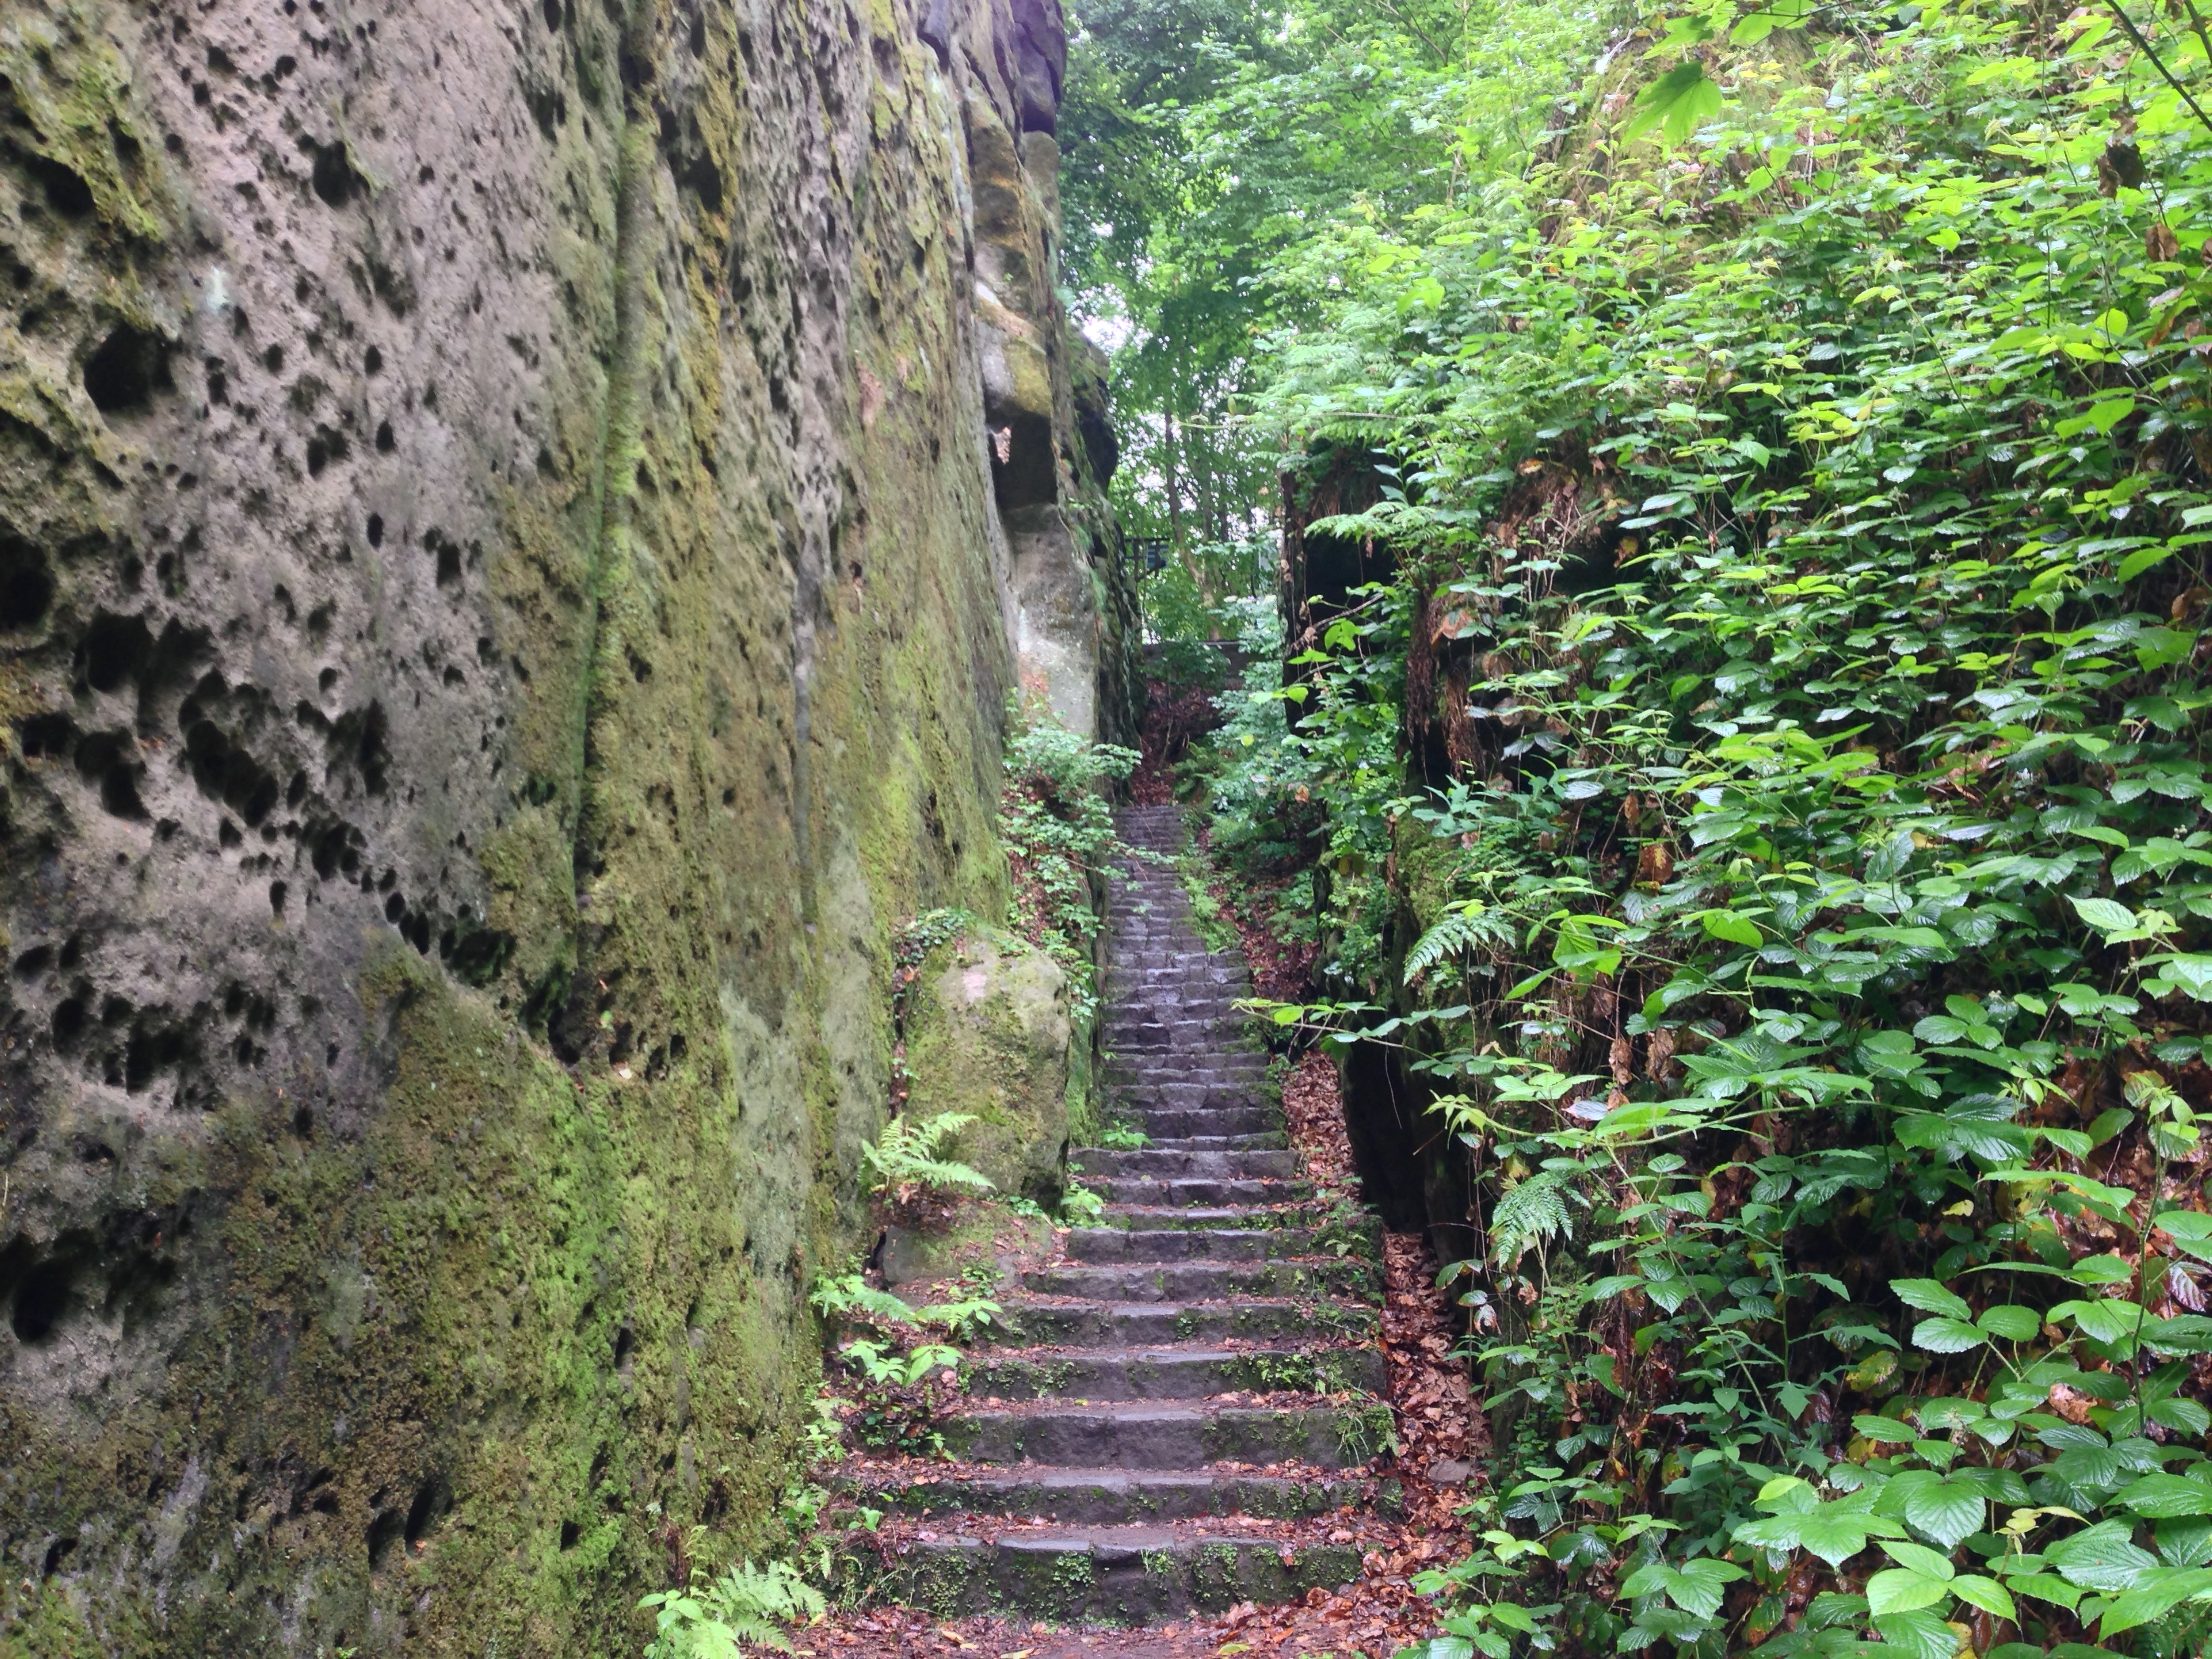 Elbe Sandstone Mountains Hike Malerweg - Ferkelschlüchte and Jungle Stairs